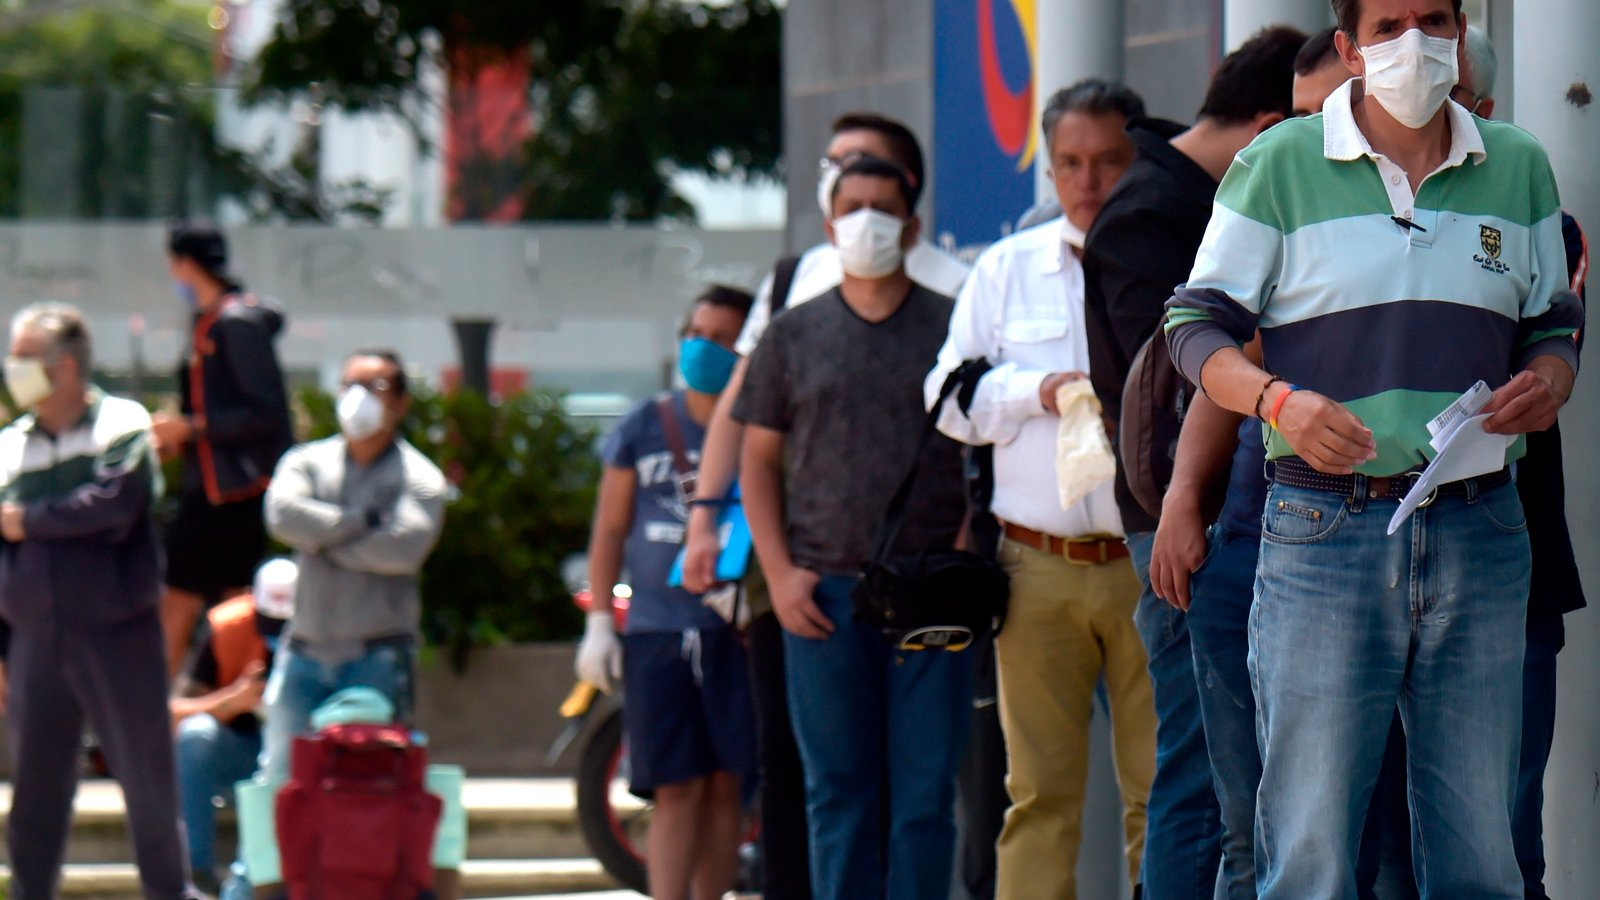 Colombia reports 10,673 new COVID-19 cases, total reaches 306,181